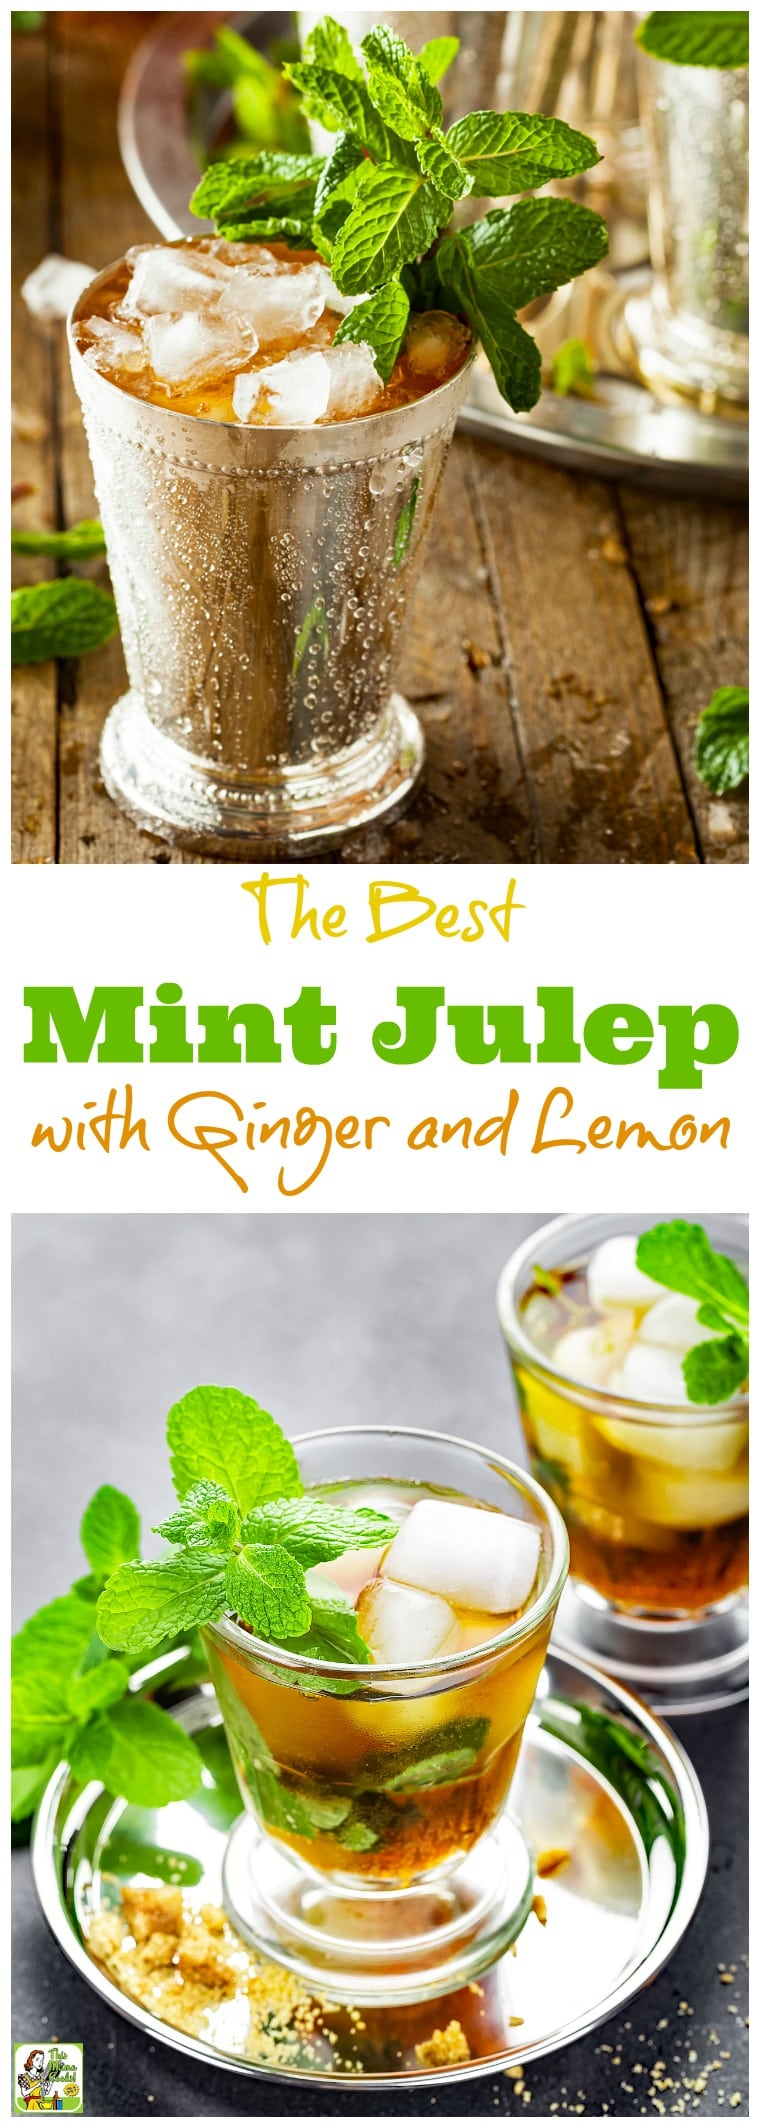 The Best Mint Julep Recipe with Ginger and Lemon is the ideal mint julep cocktail for your Derby Day party. Click to get this sugar free iced tea mint julep recipe. Can also be made as a mint julep mocktail recipe.